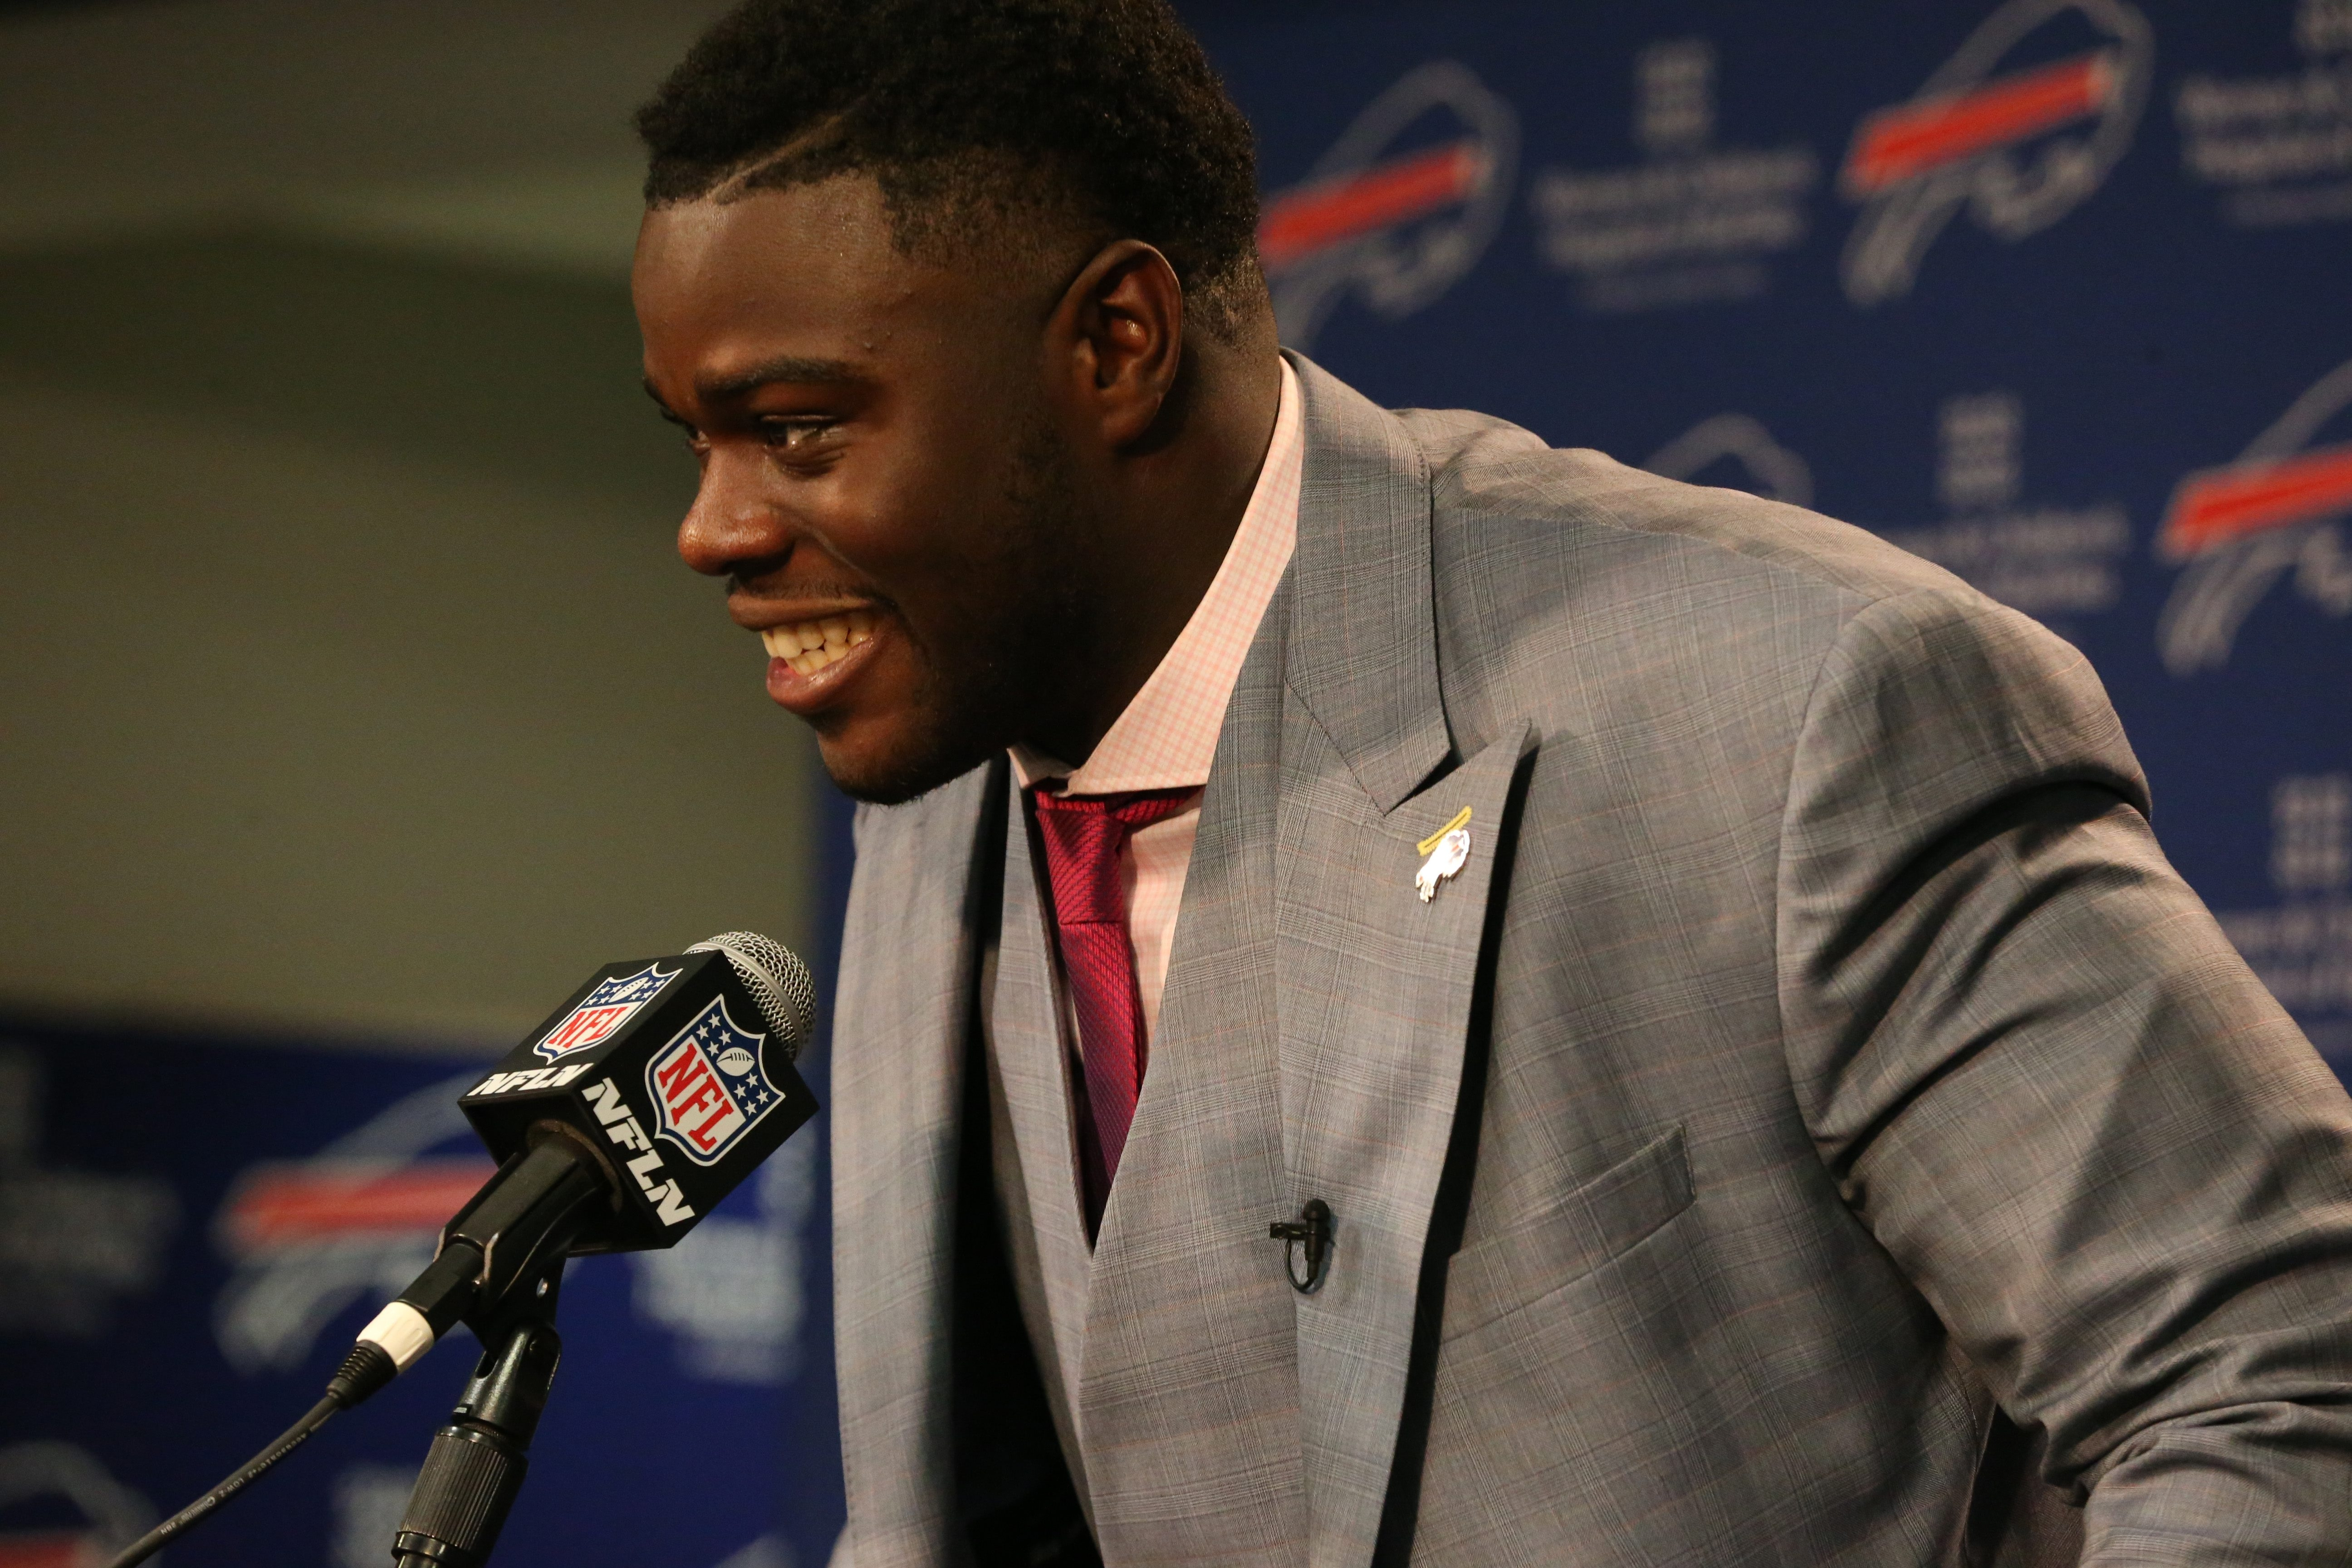 First-round pick Shaq Lawson is one reason the Bills may have been helped more in the draft than any of their AFC East rivals. (James P. McCoy/ Buffalo News)